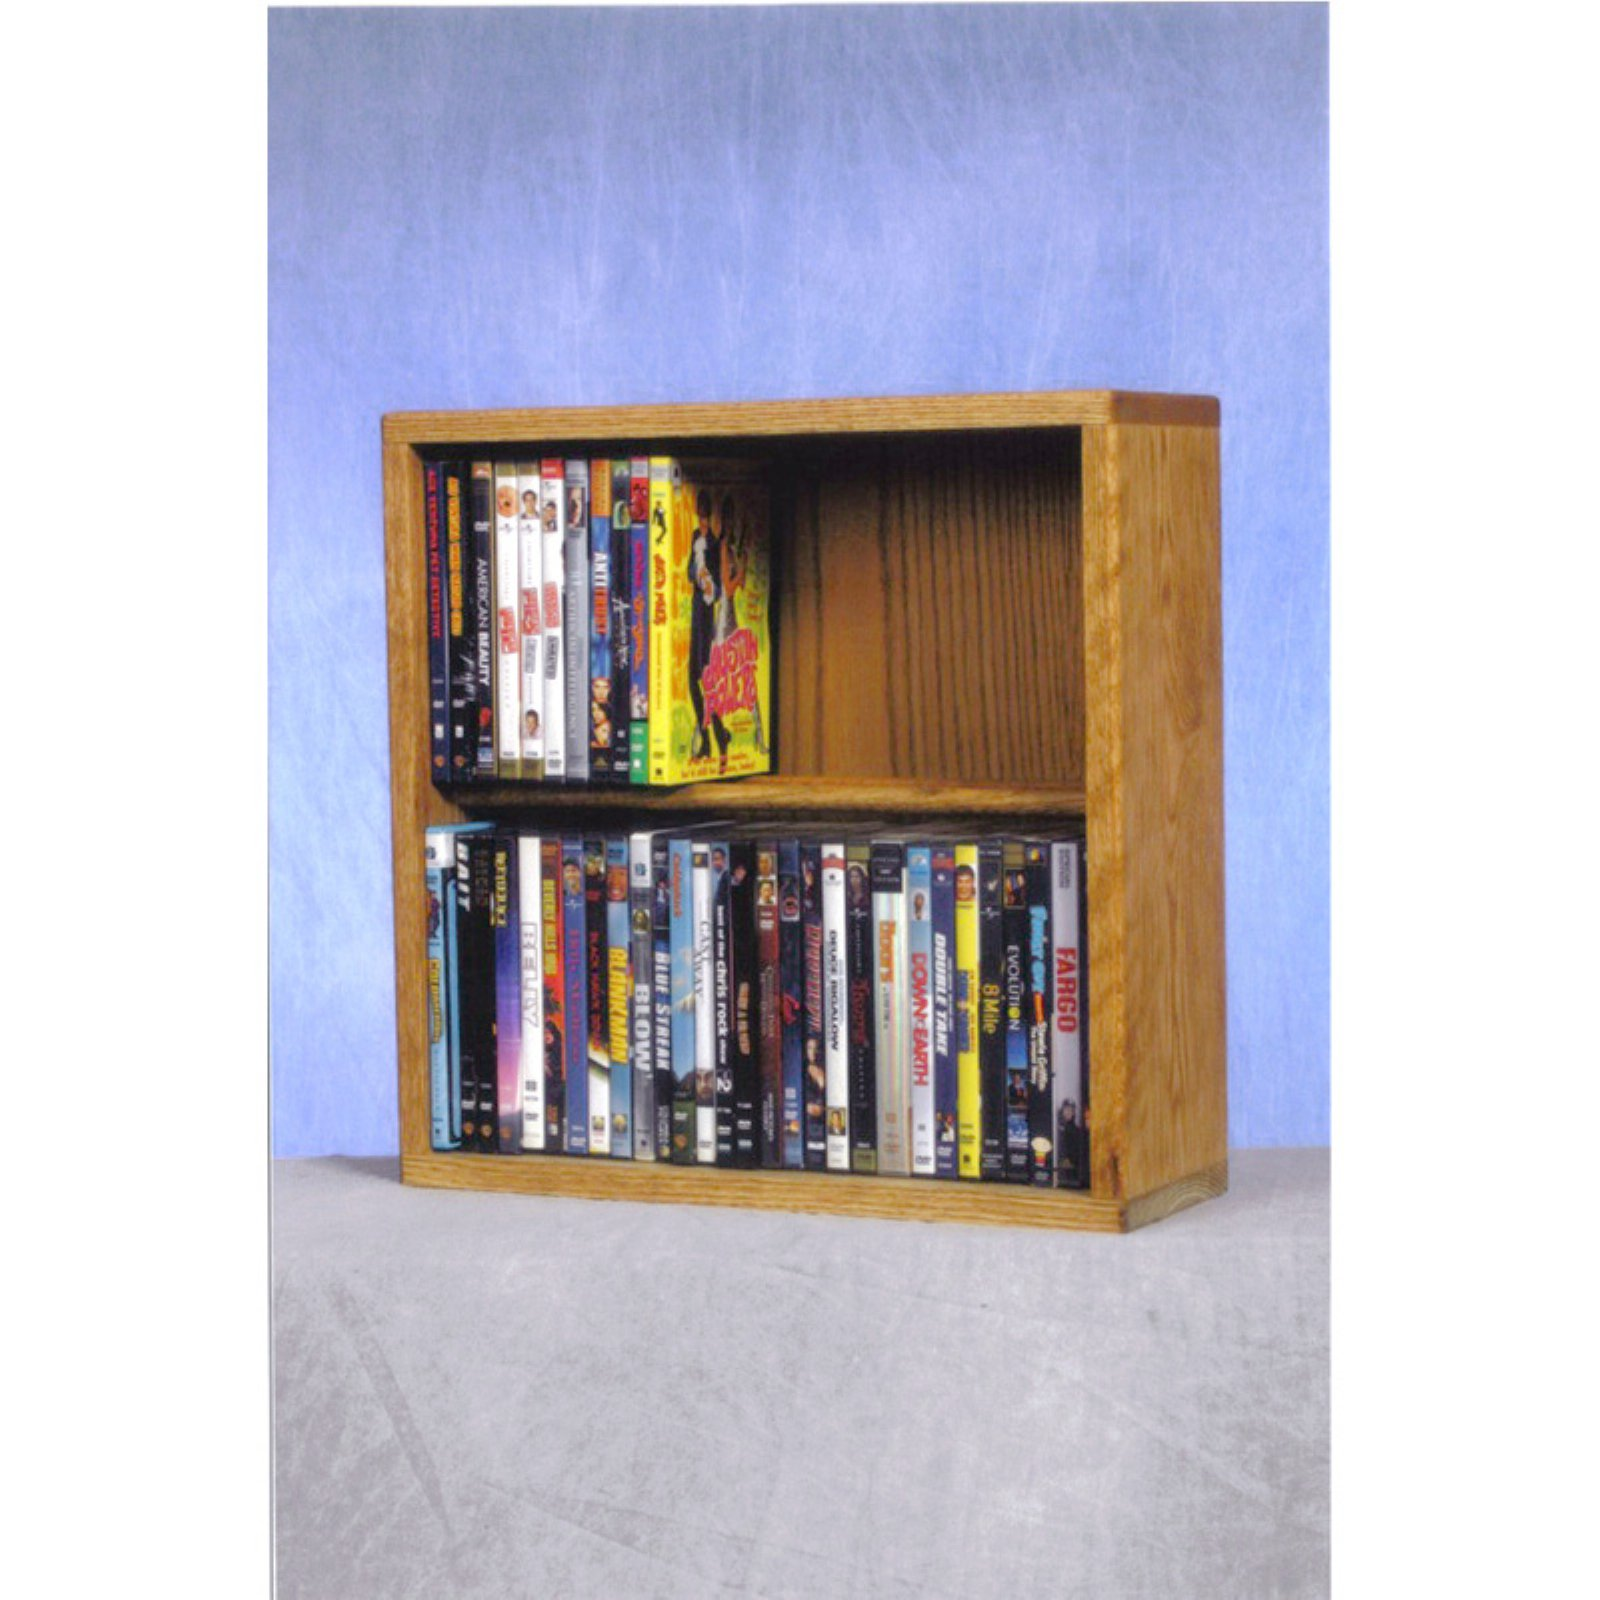 The Wood Shed Solid Oak 2 Row Dowel 60 DVD Media Rack